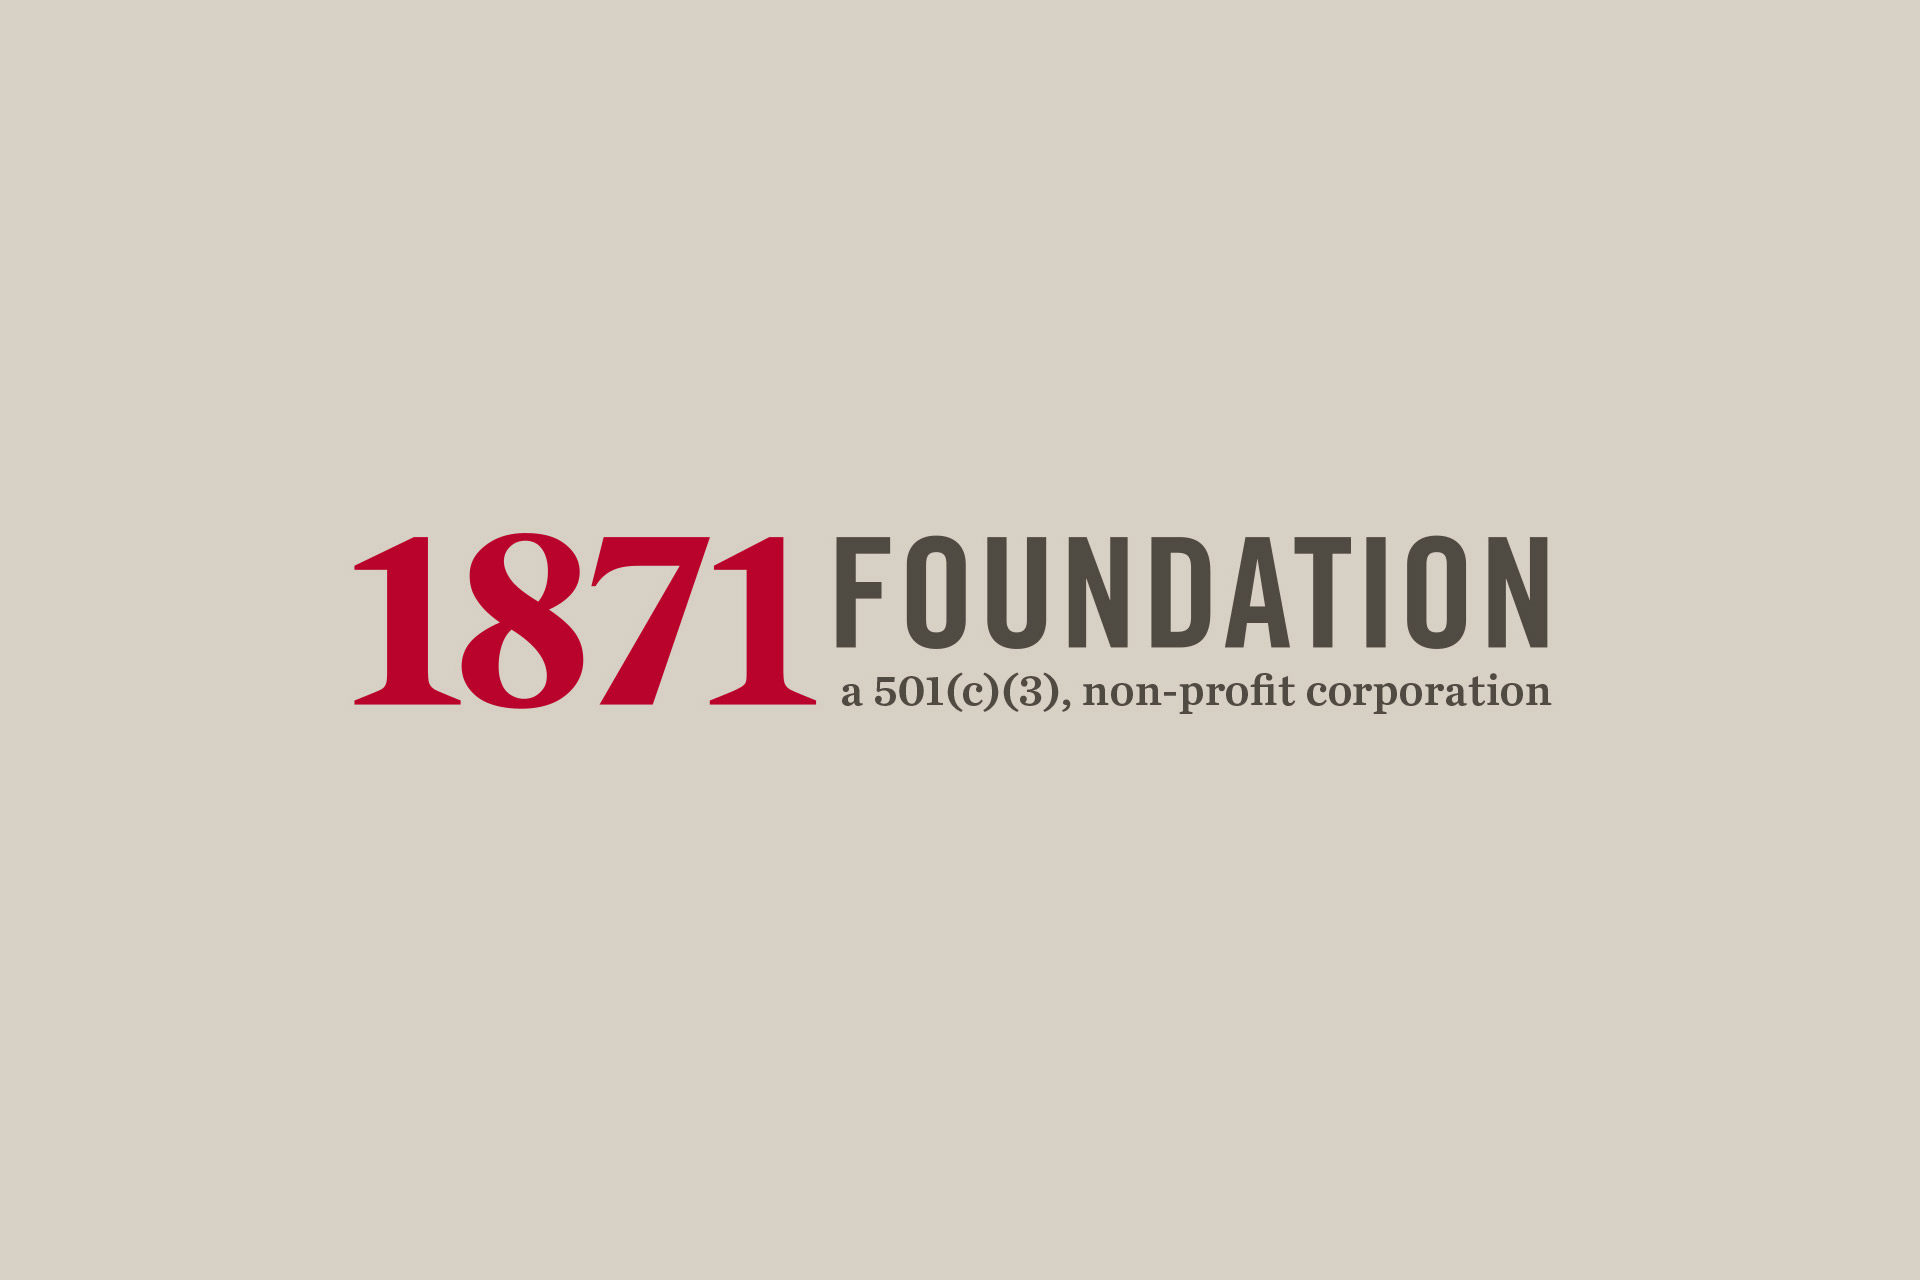 1871 Foundation logo design